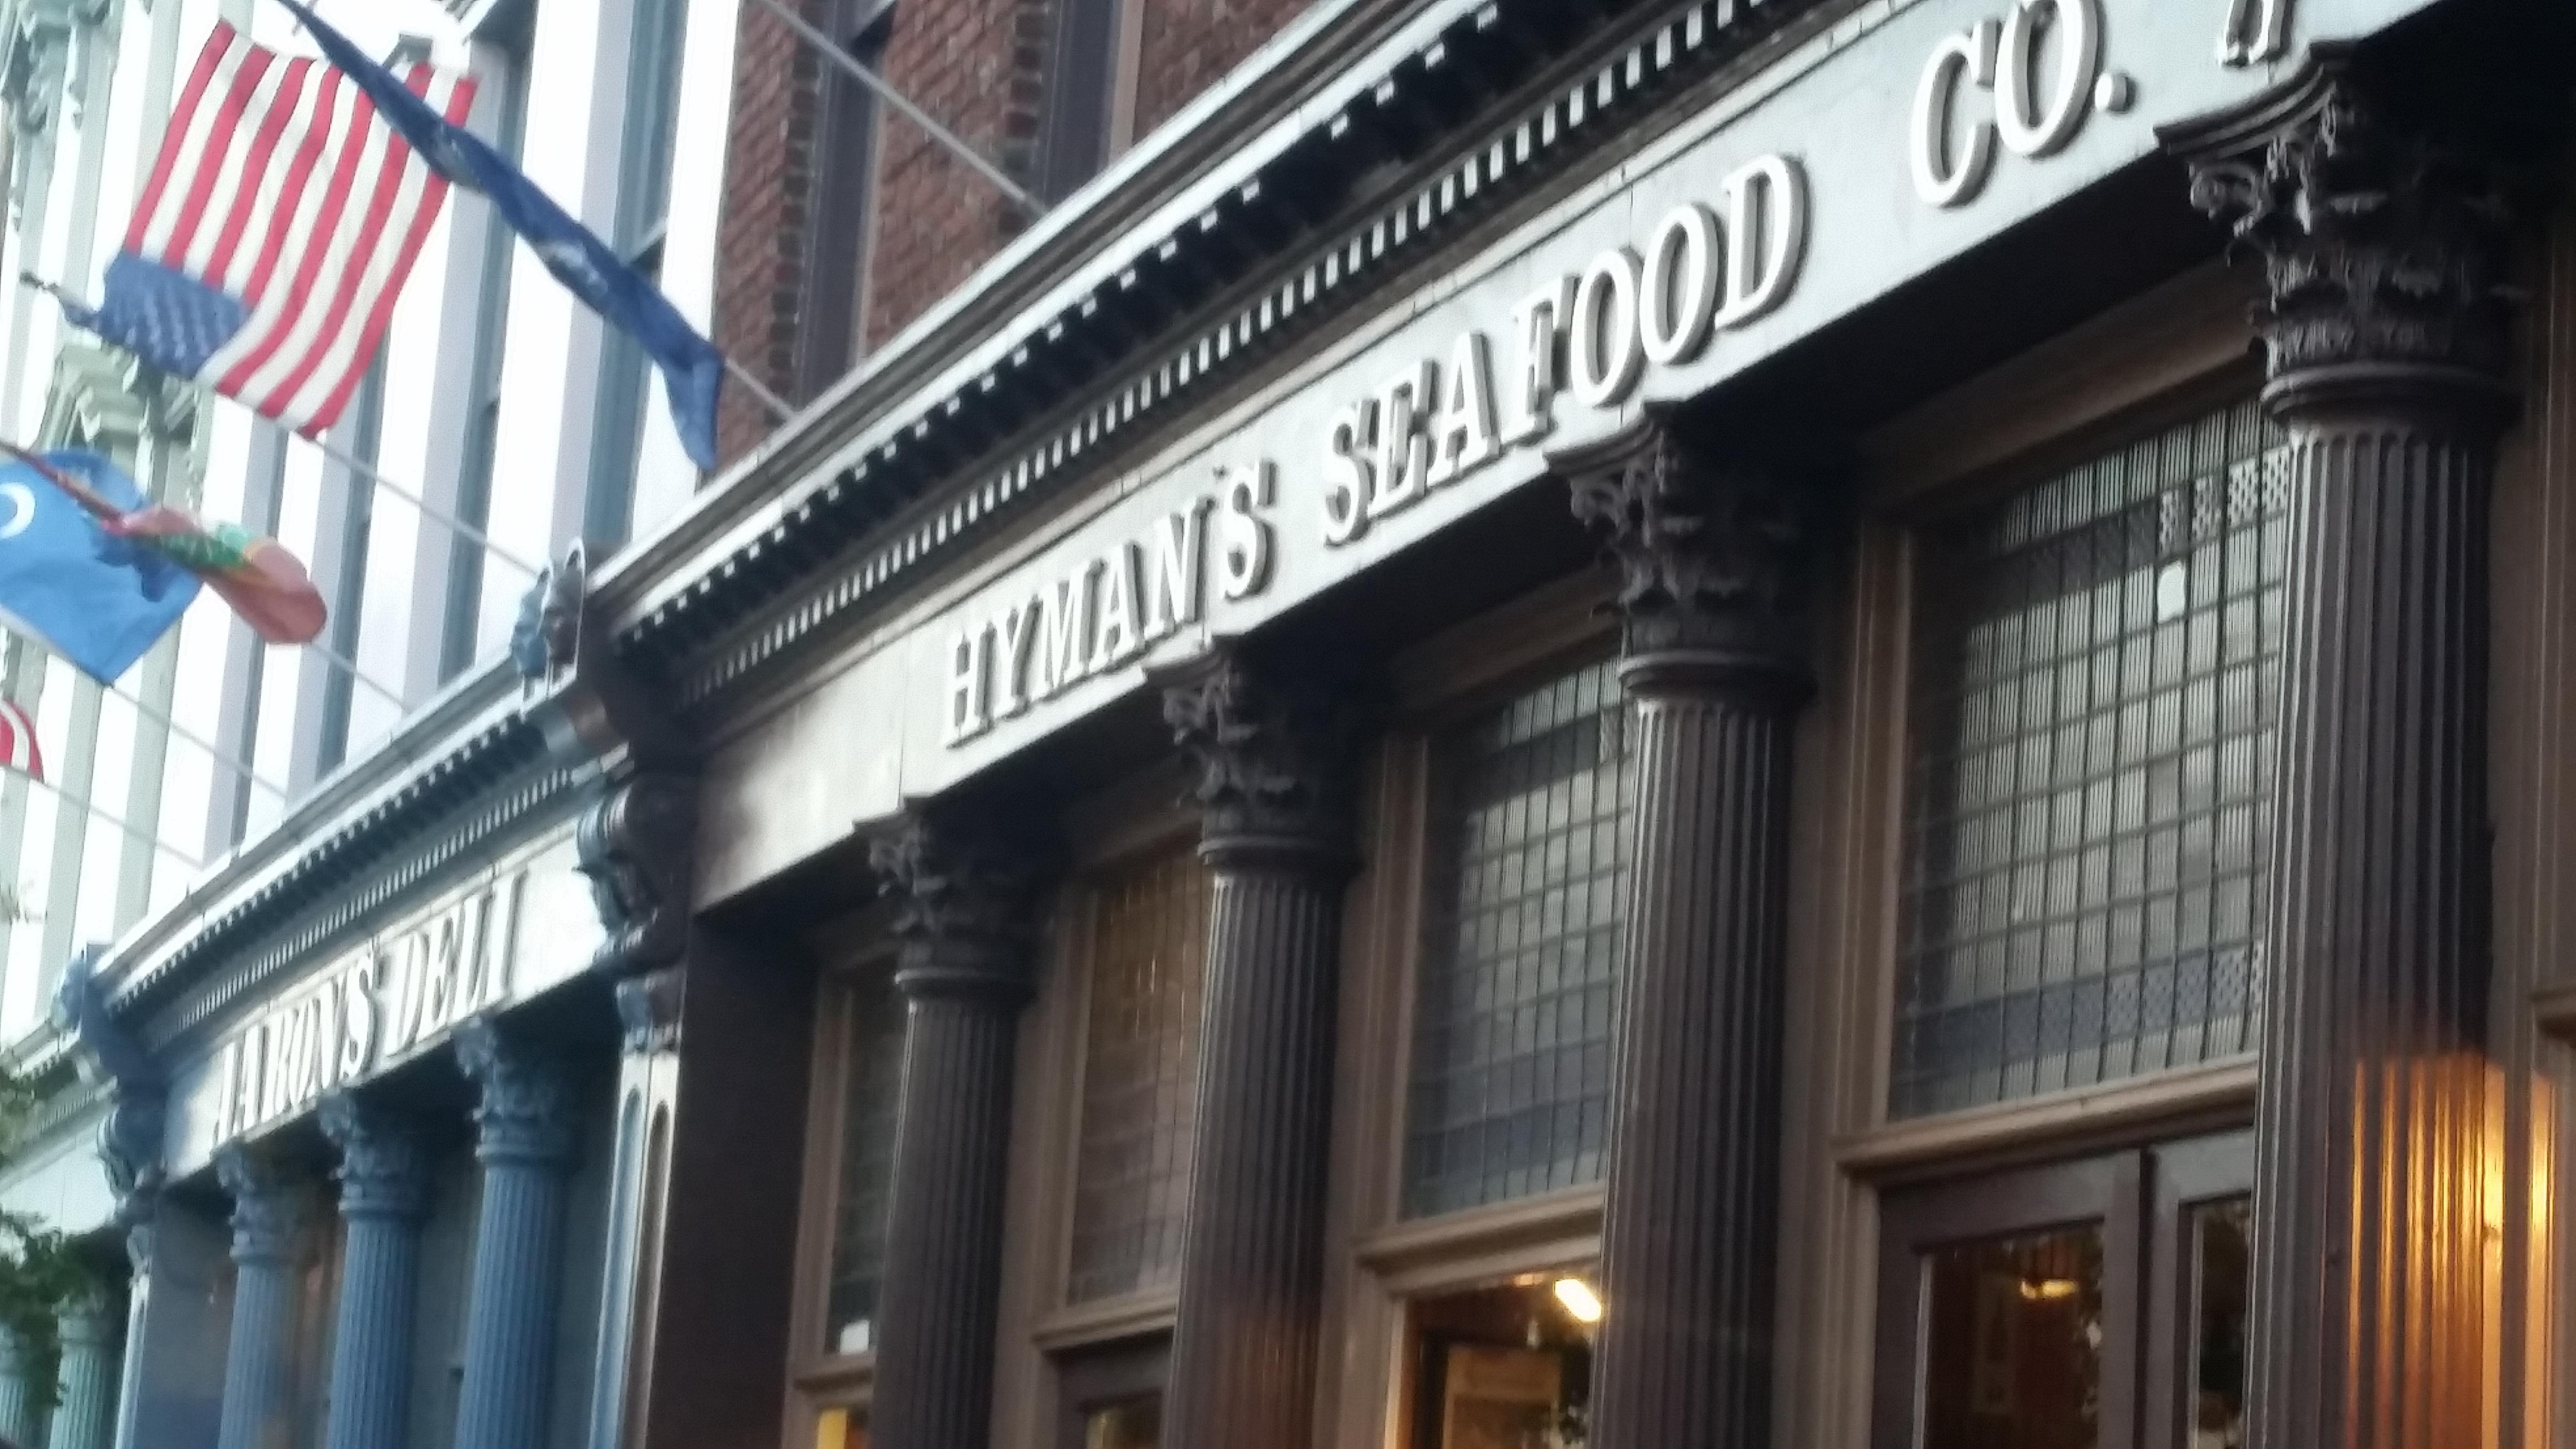 The best seafood!